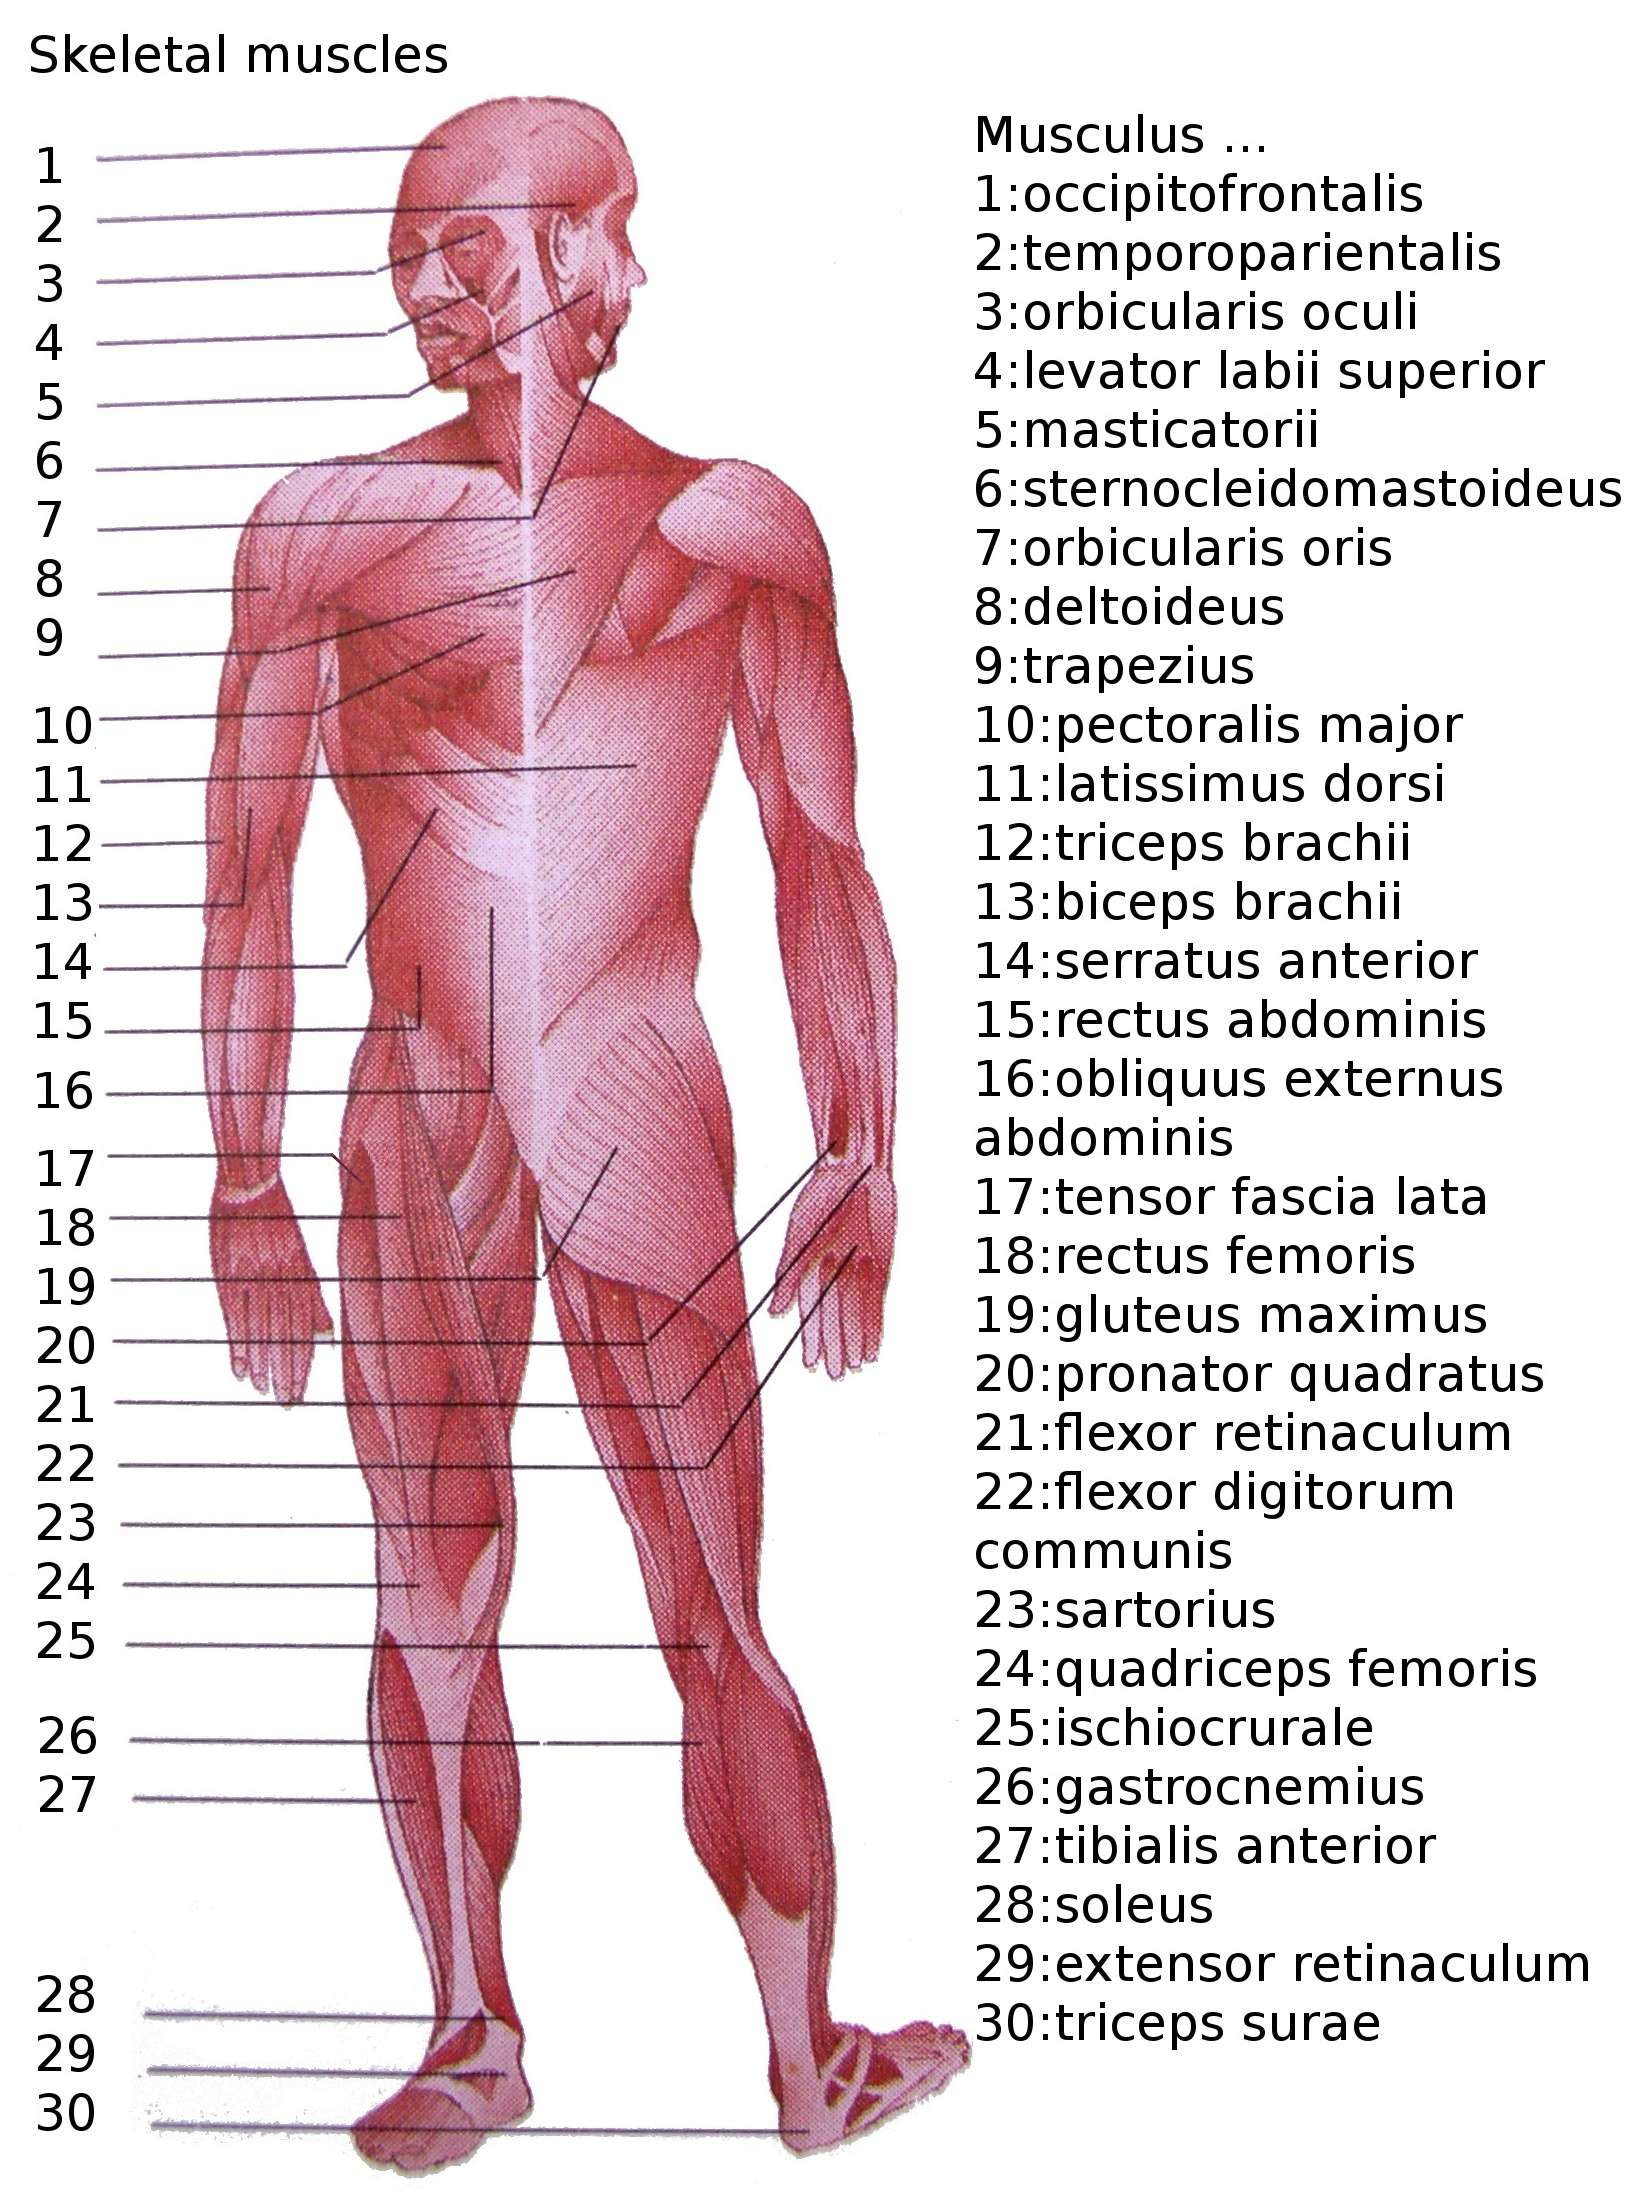 Human Muscle Diagram List Of Skeletal Muscles Of The Human Body Wikipedia